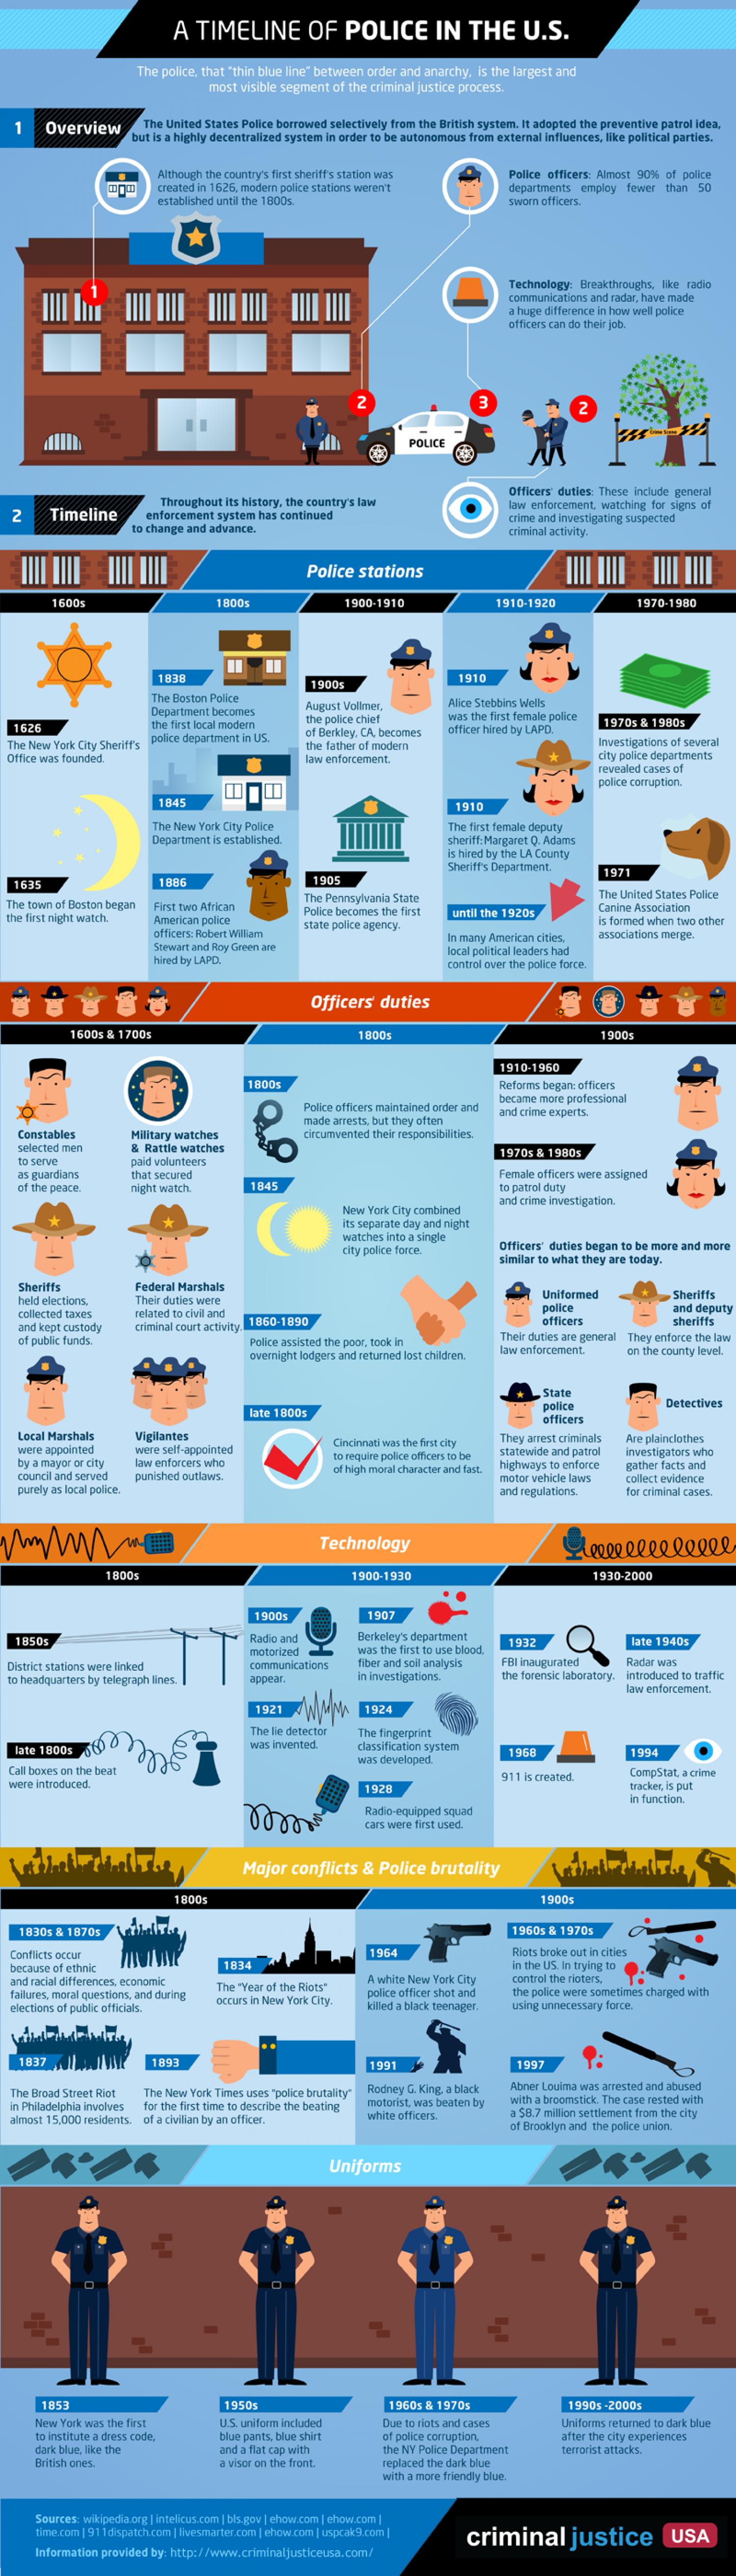 A Timeline of the Police in the U.S  Infographic